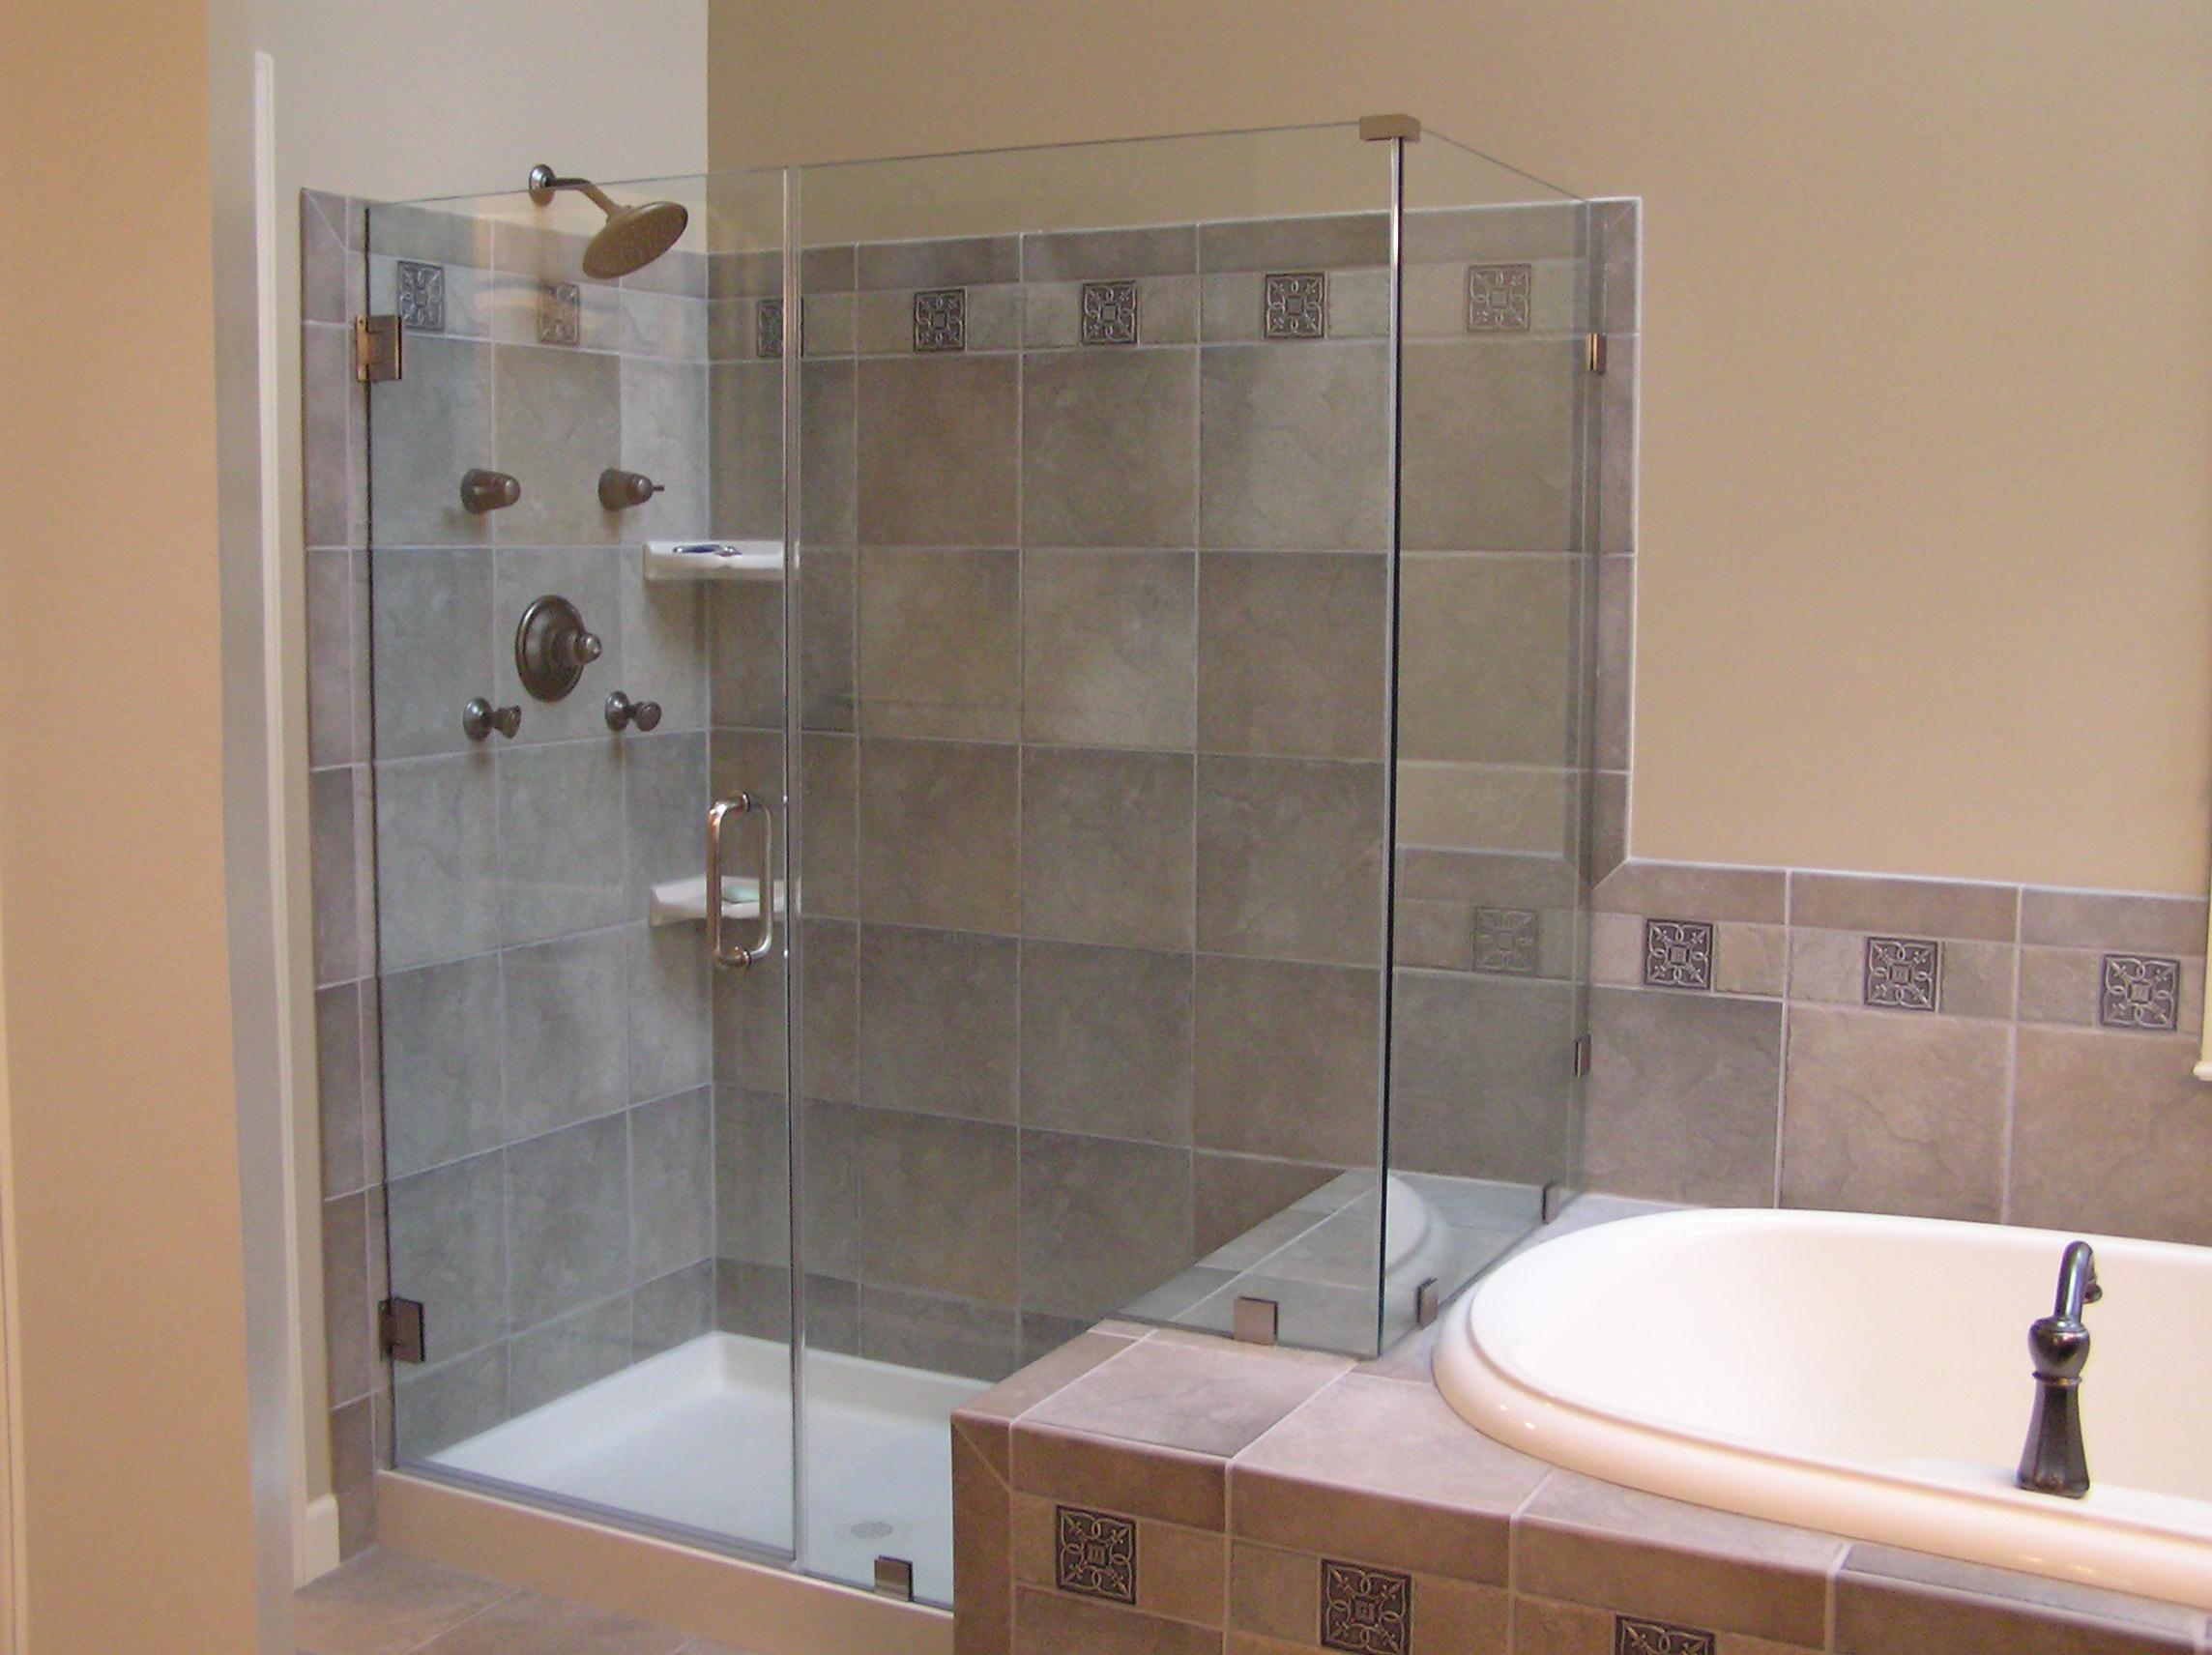 Bathroom Remodel Contractors bathroom remodel delaware - home improvement contractors